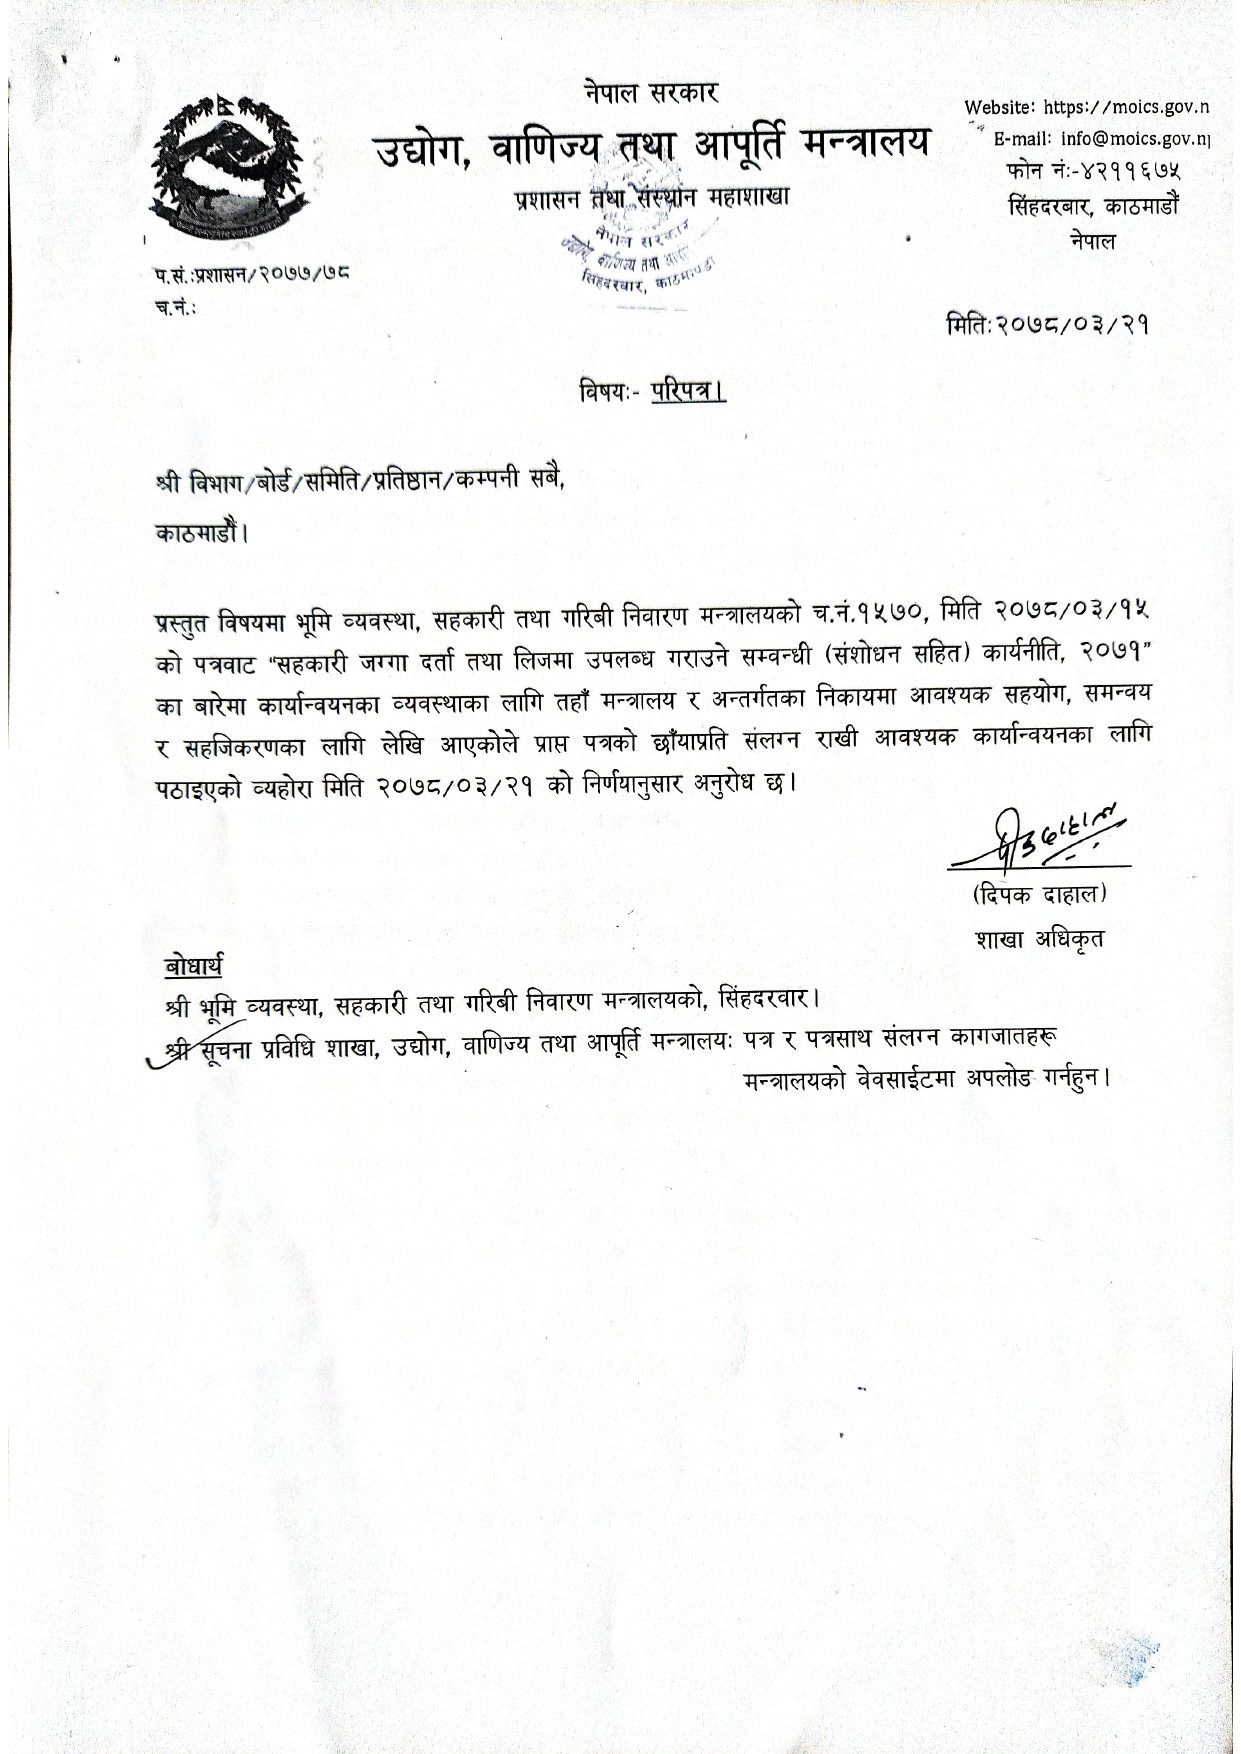 """Circular on """"Cooperative Land Registration and Leasing Provision (with Amendment) Policy, 2071""""."""